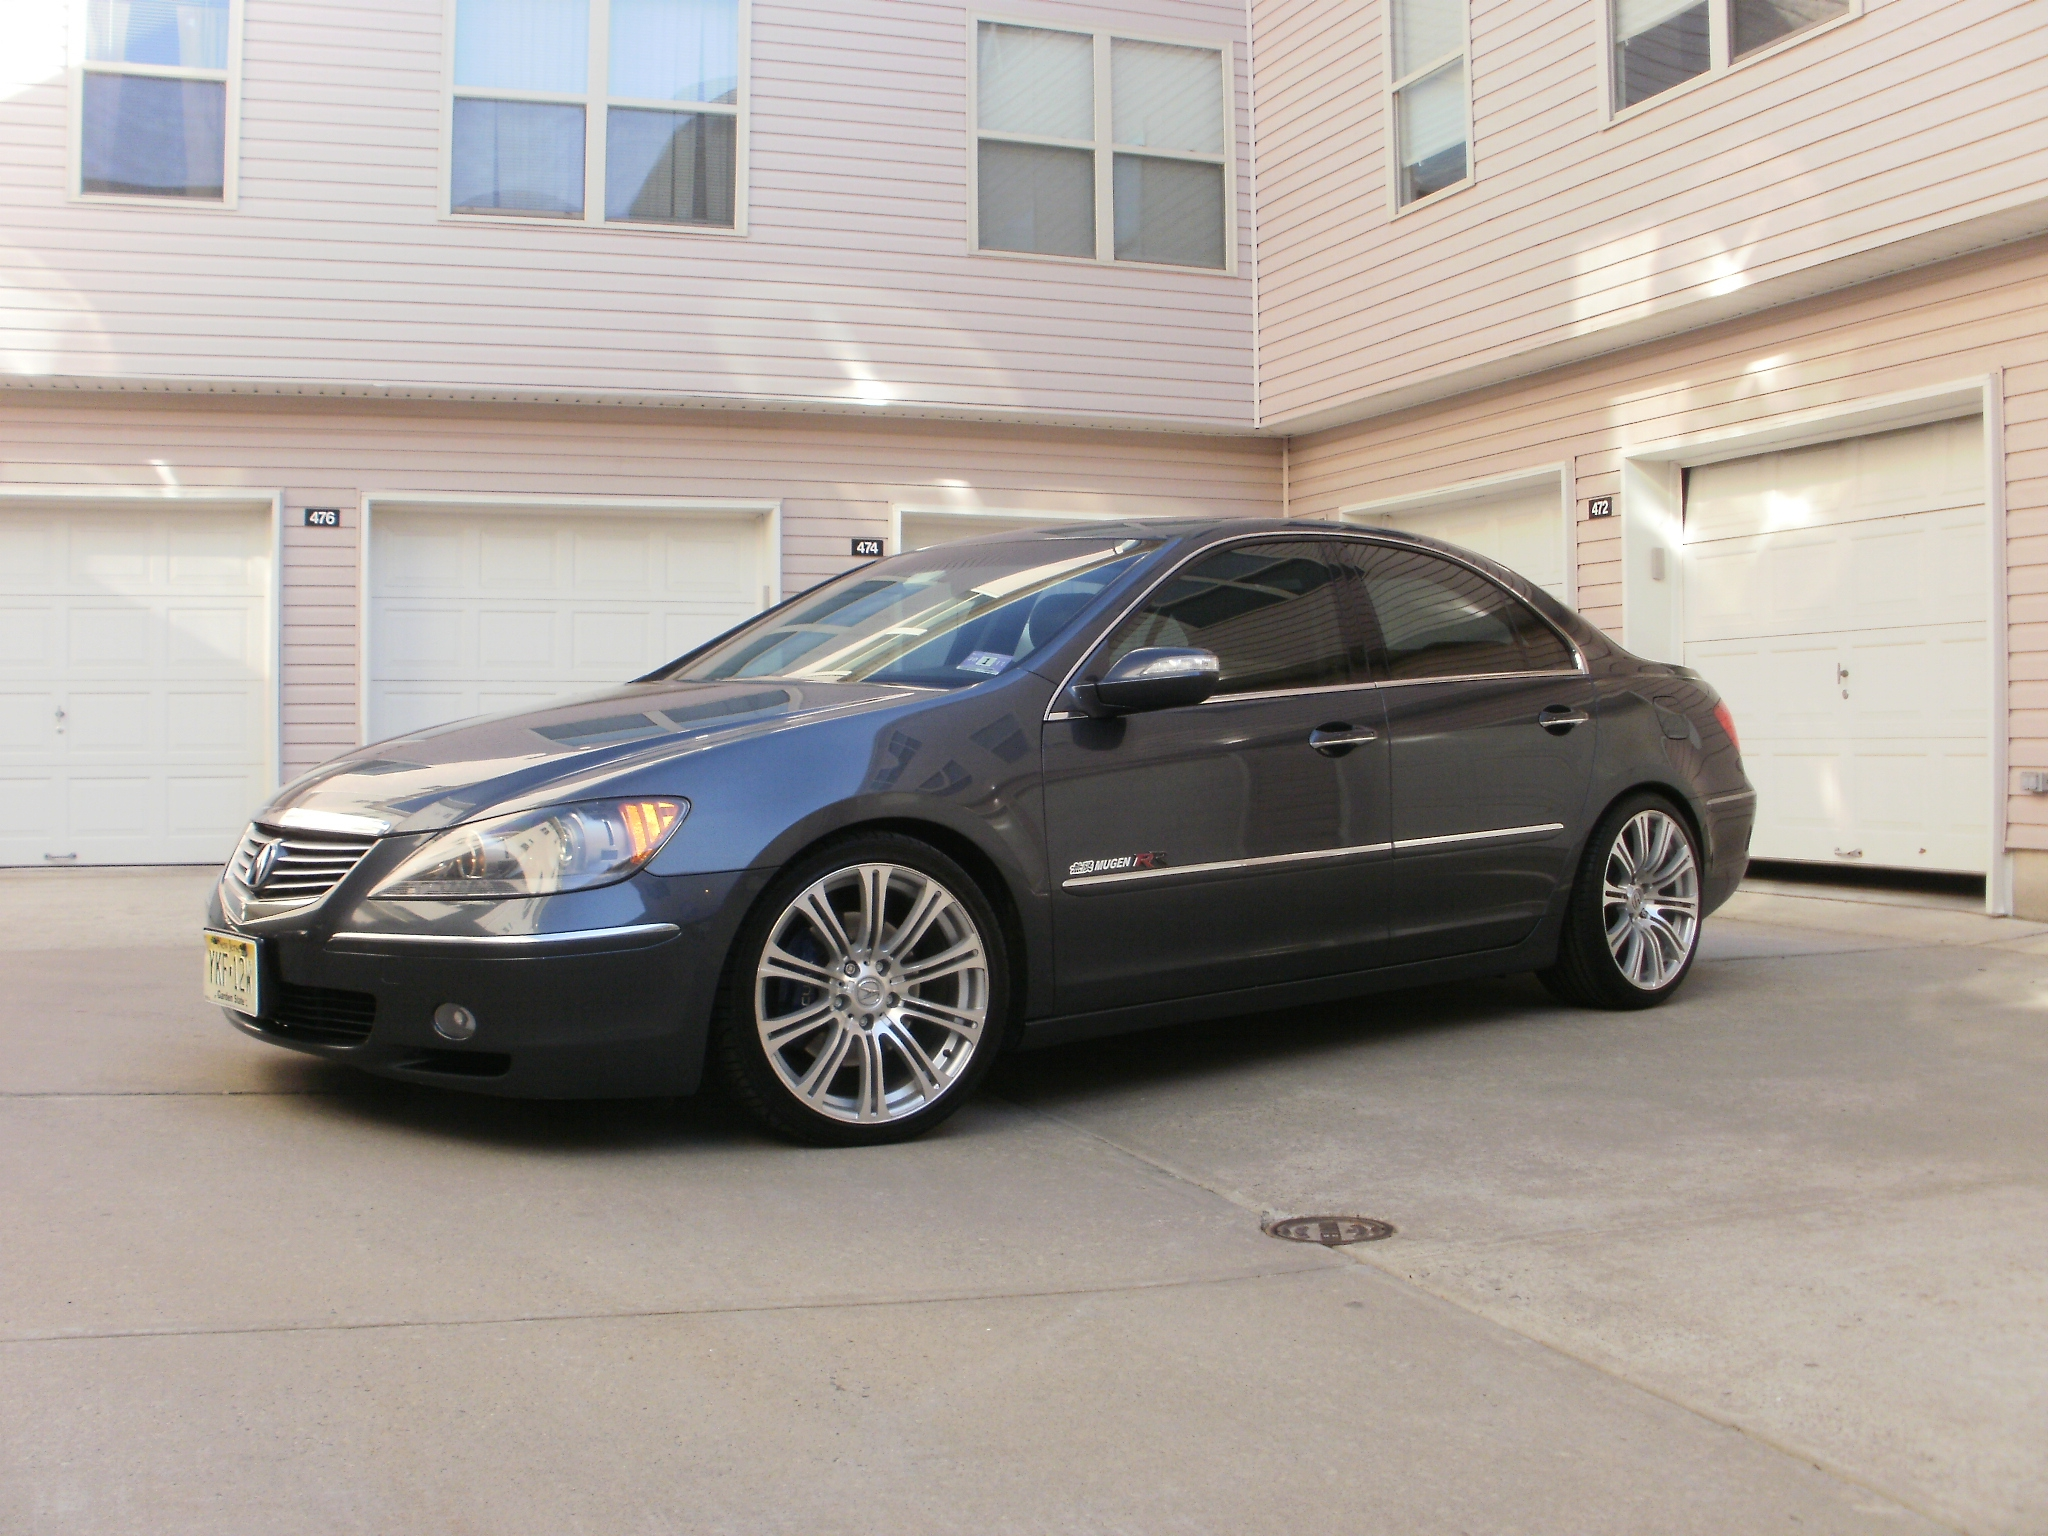 Guss_90 2005 Acura RL Specs, Photos, Modification Info At